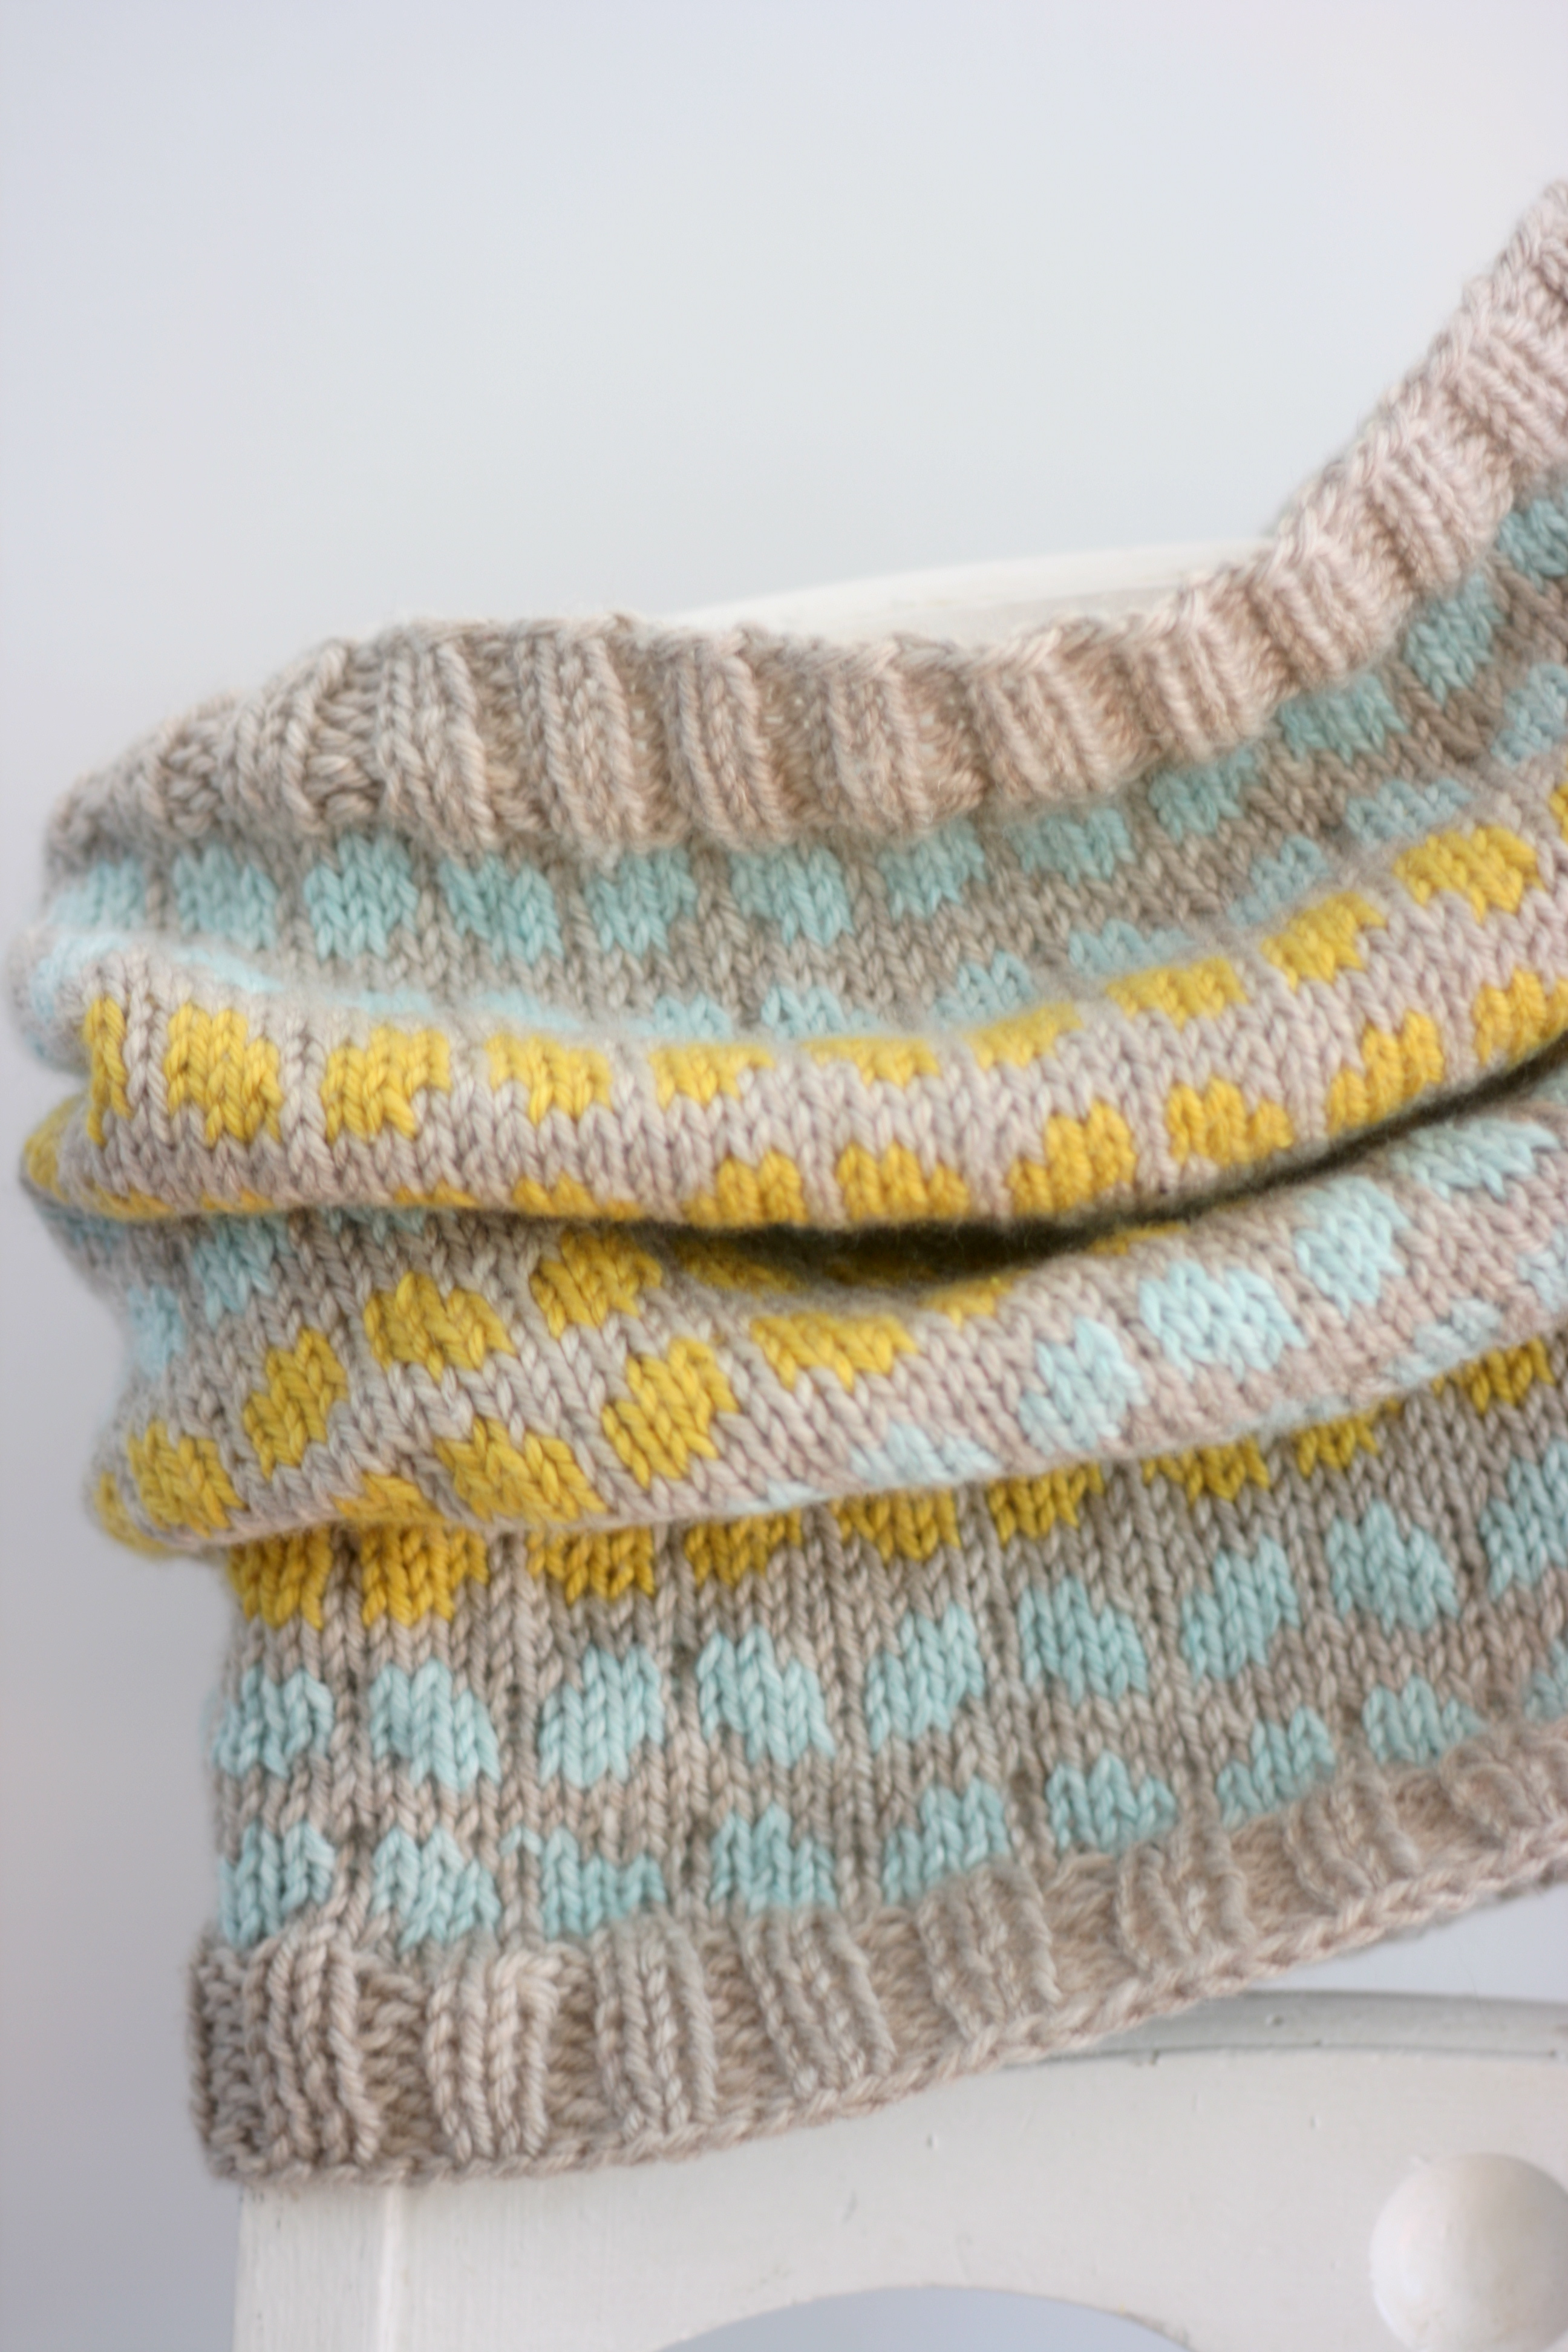 casapinka: Quick Fair Isle Cowls and a Giveaway